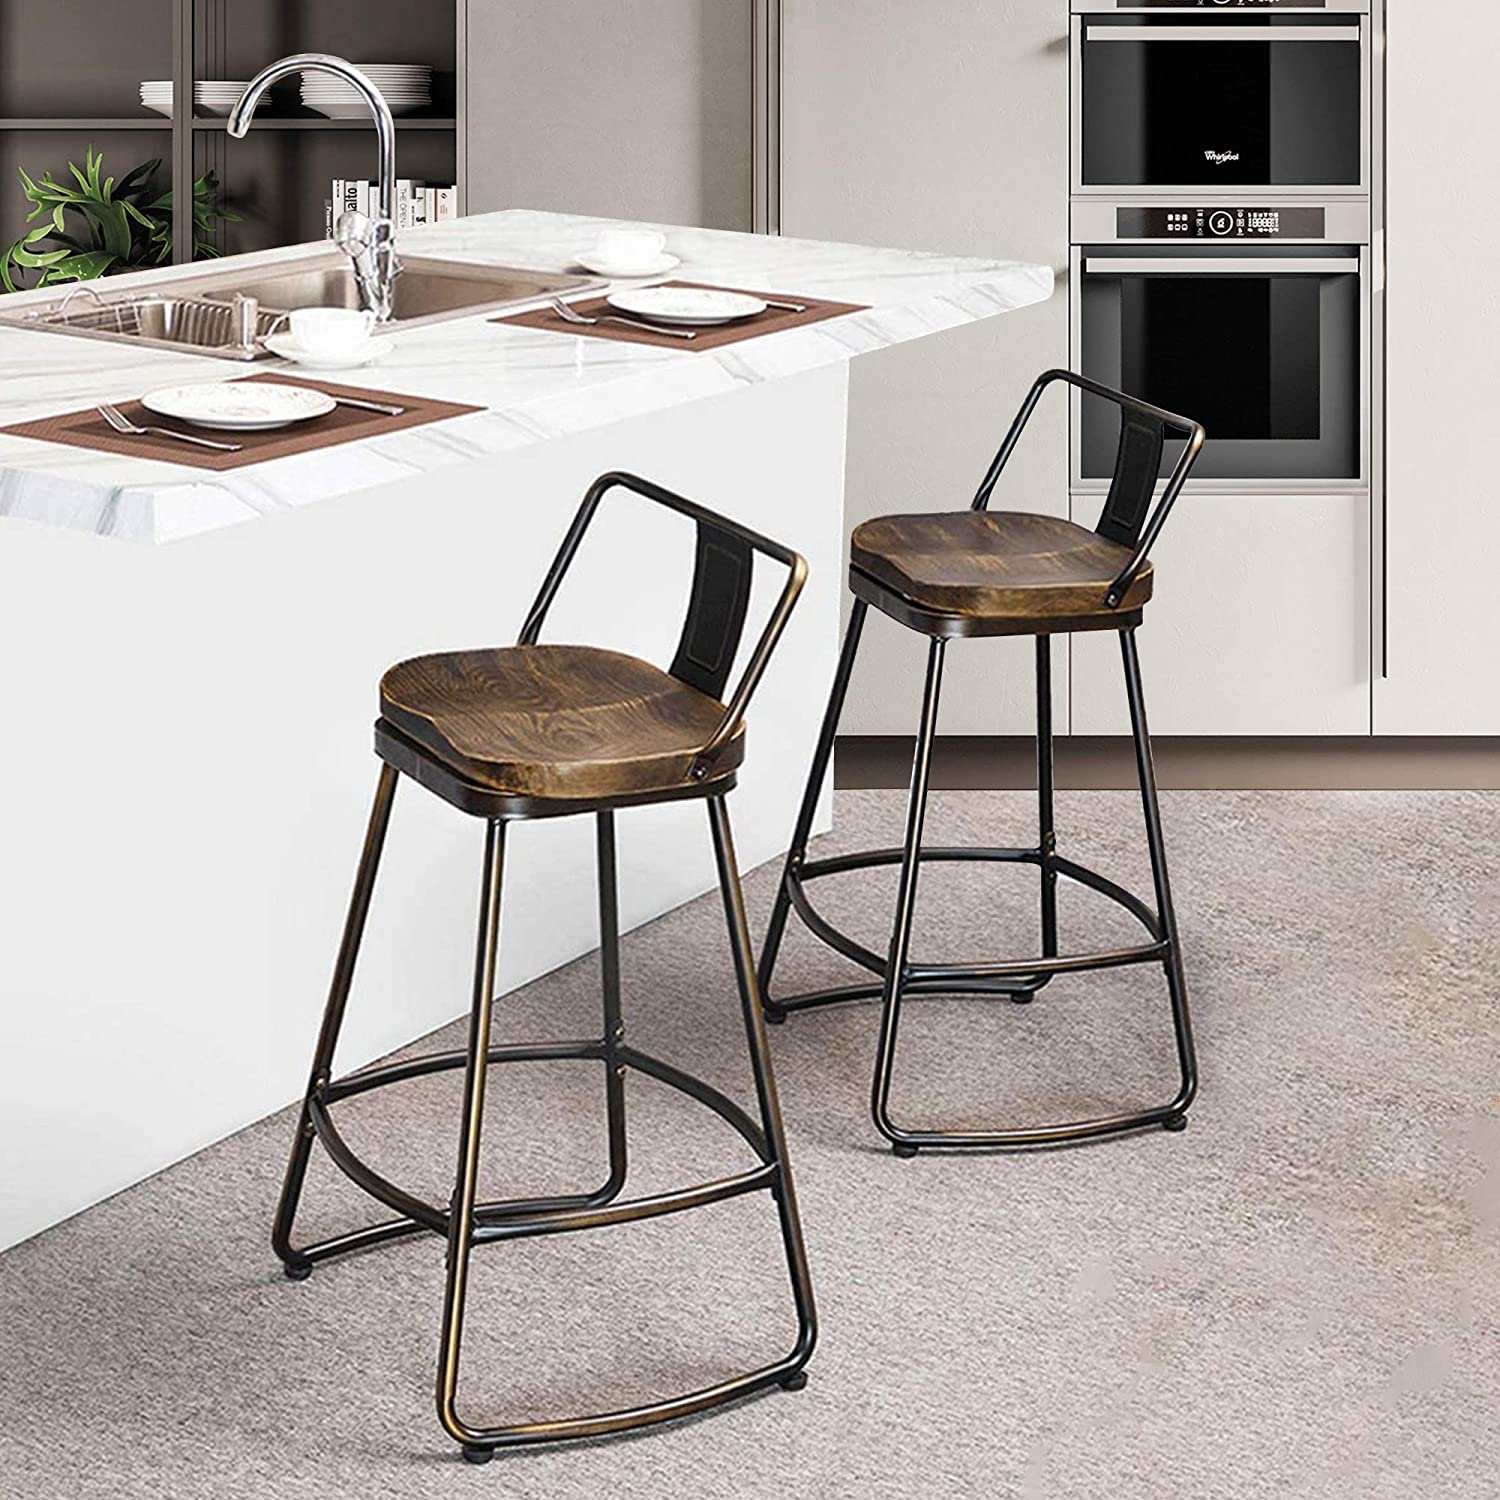 Amazon Com Alunaune 26 Swivel Metal Bar Stools Set Of 2 With Low Back Counter Height Barstools Kitchen Counter Stool With Wooden Seat Distressed Bronze Kitchen Dining